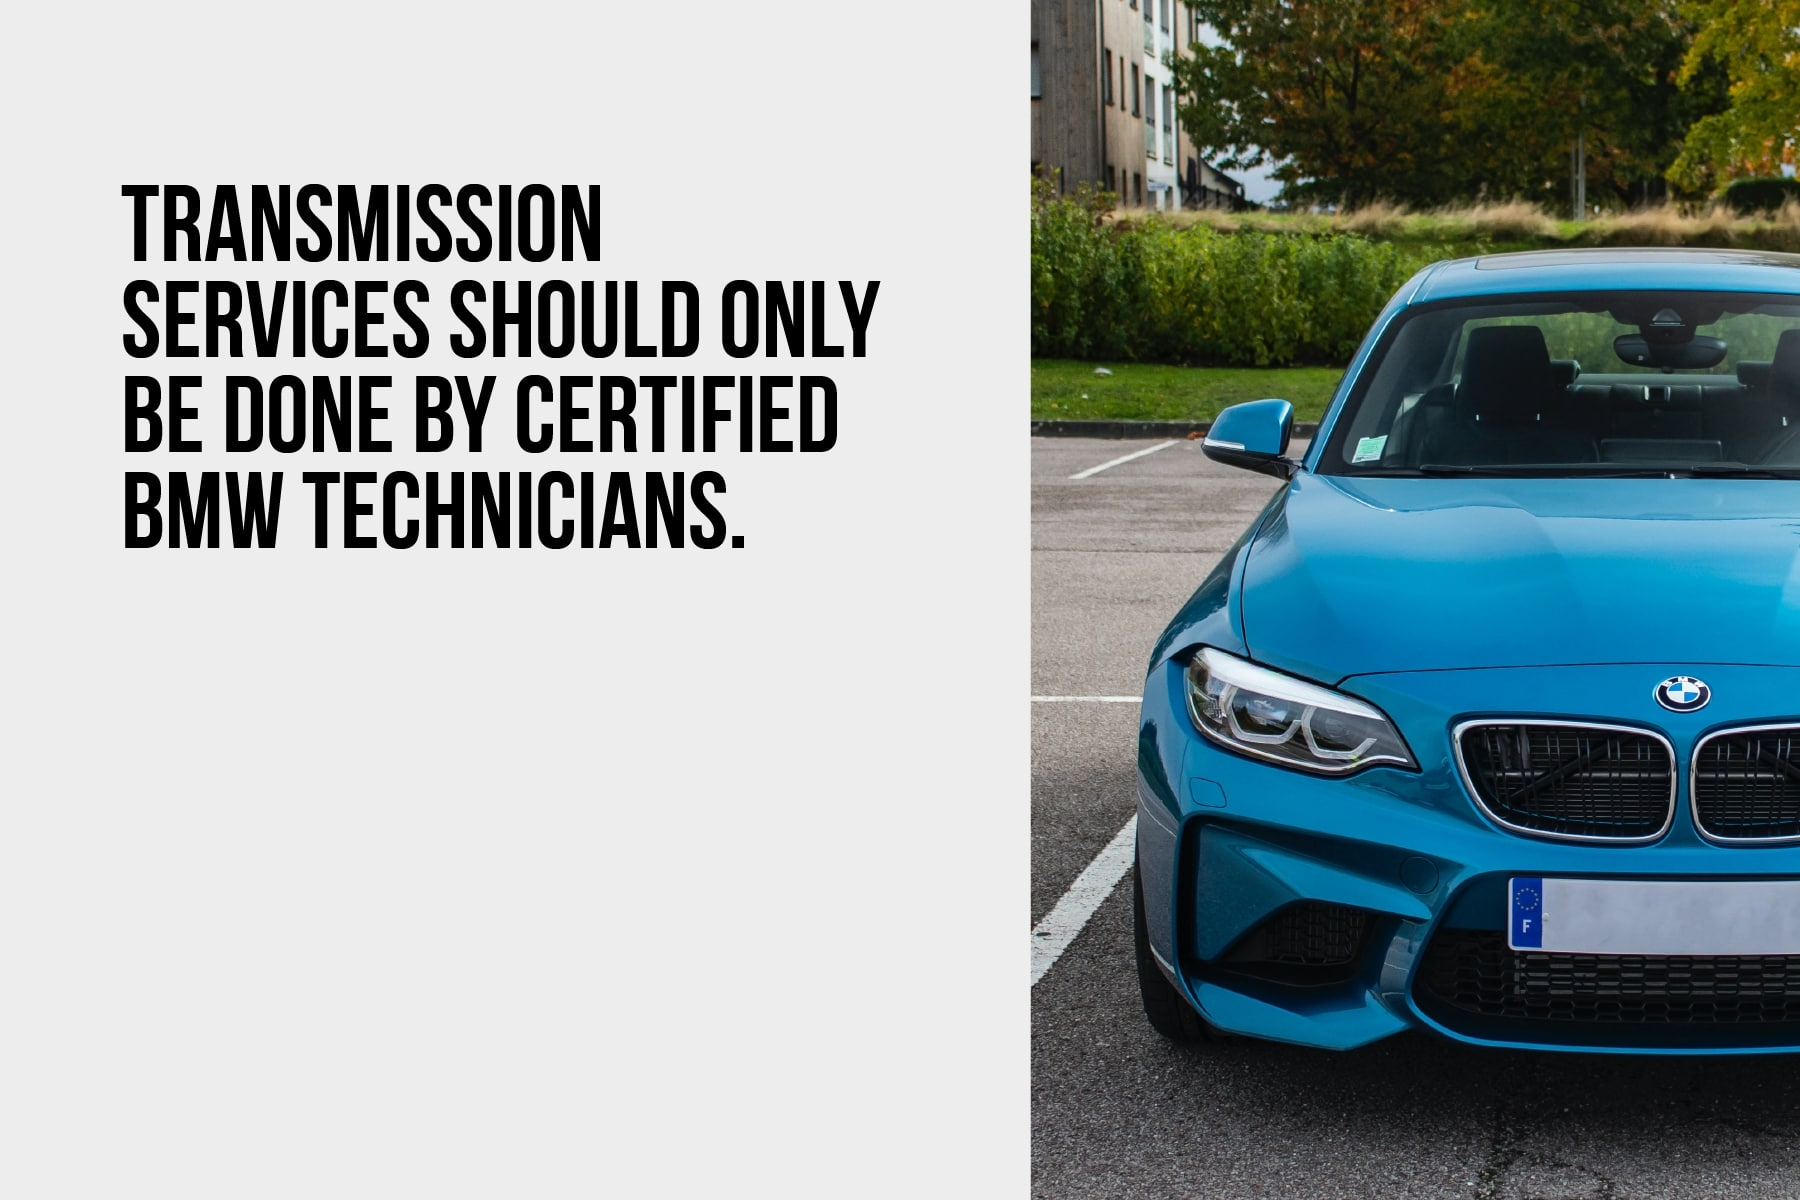 transmission services should only be done by certified BMW technicians